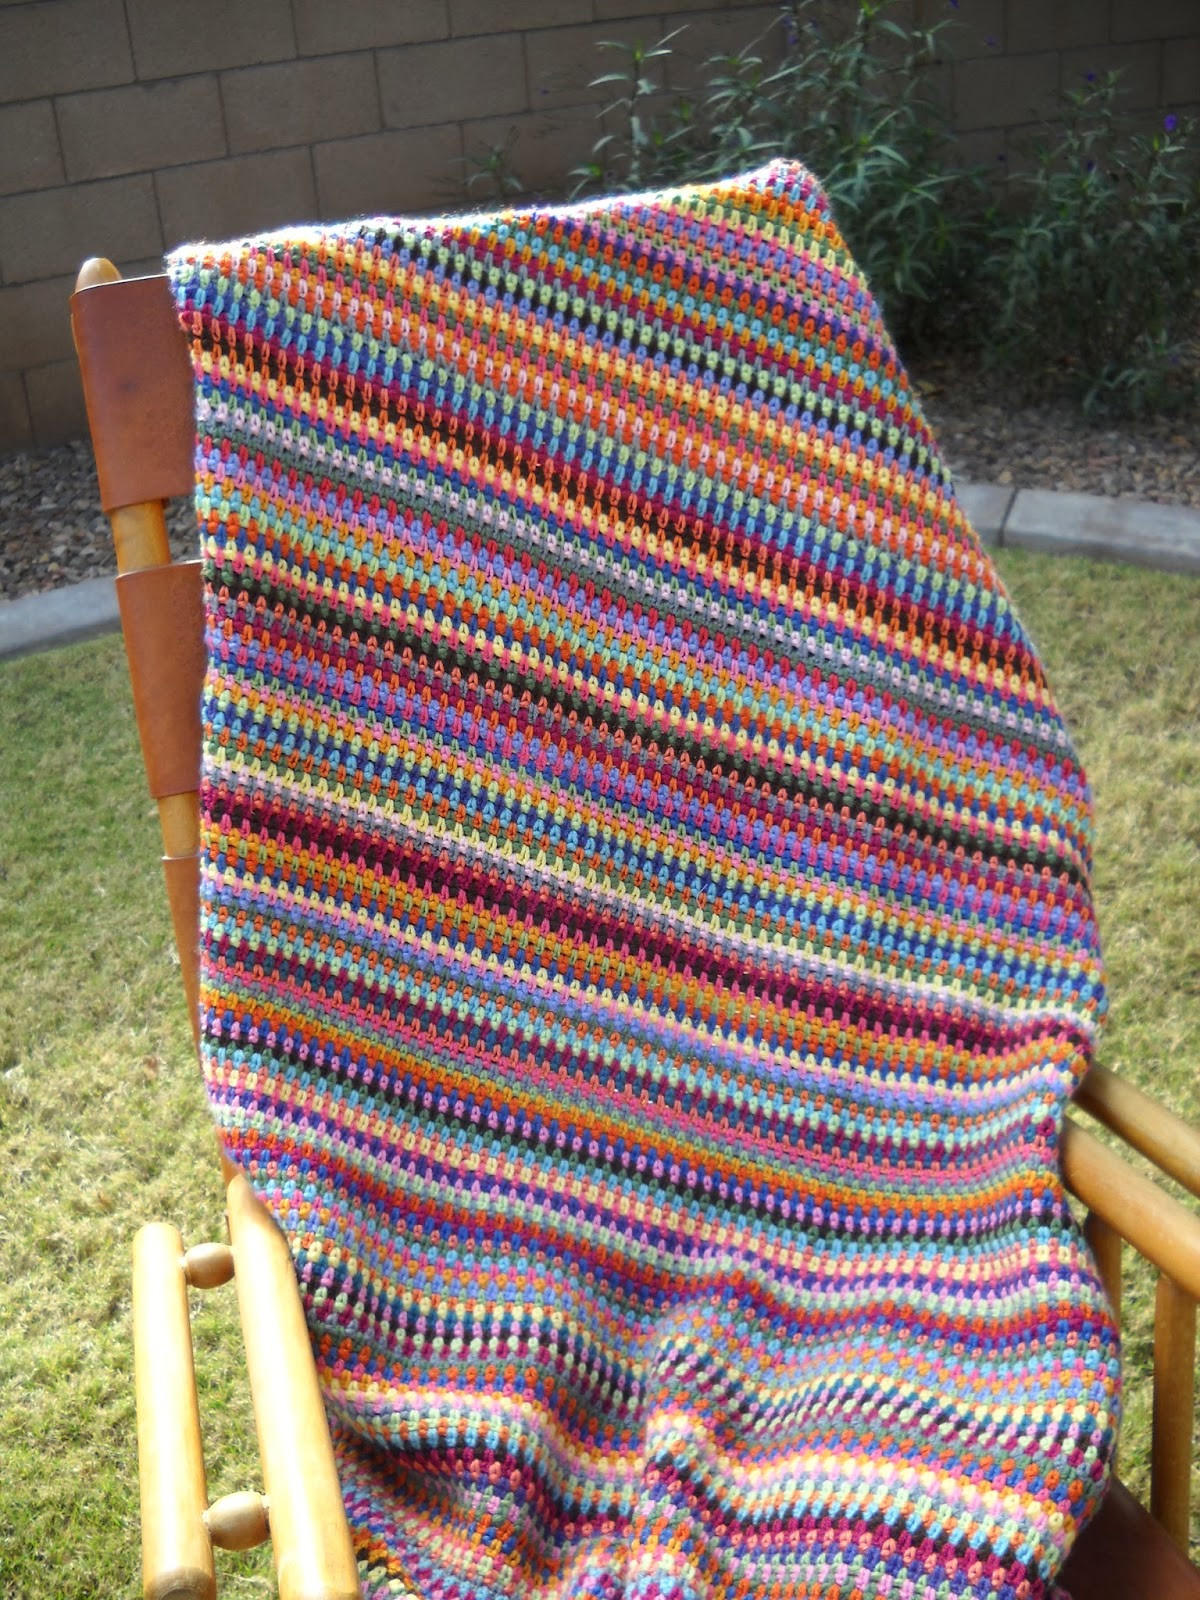 Inspirational Quilting Blog Cactus Needle Quilts Fabric and More Afghan Stitch Of Innovative 41 Images Afghan Stitch